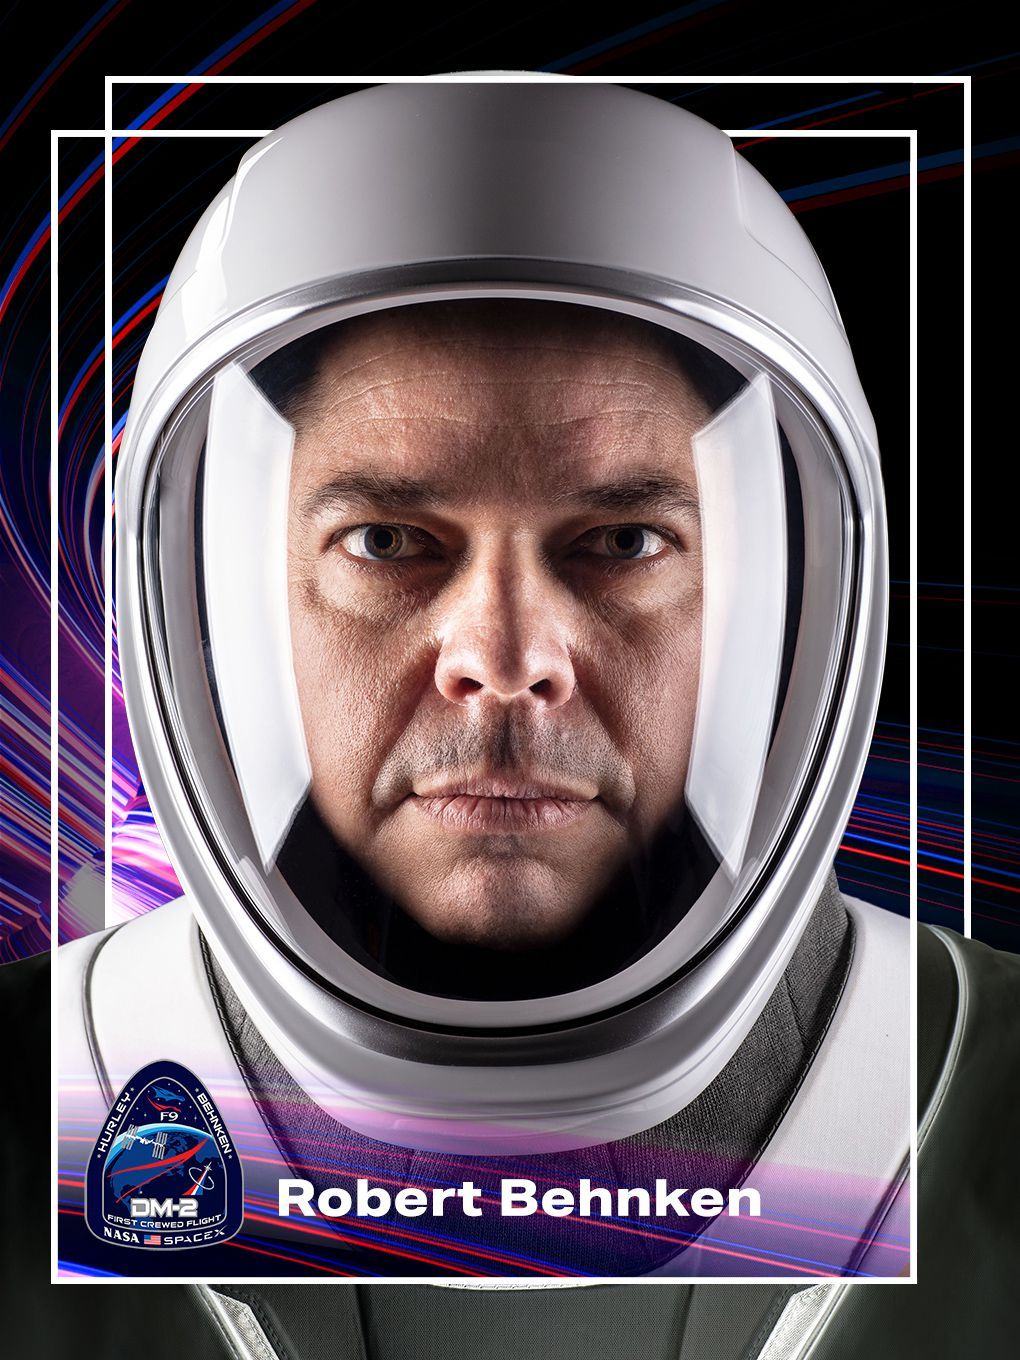 A graphic of astronaut Robert Behnken made to look like the front of a trading card